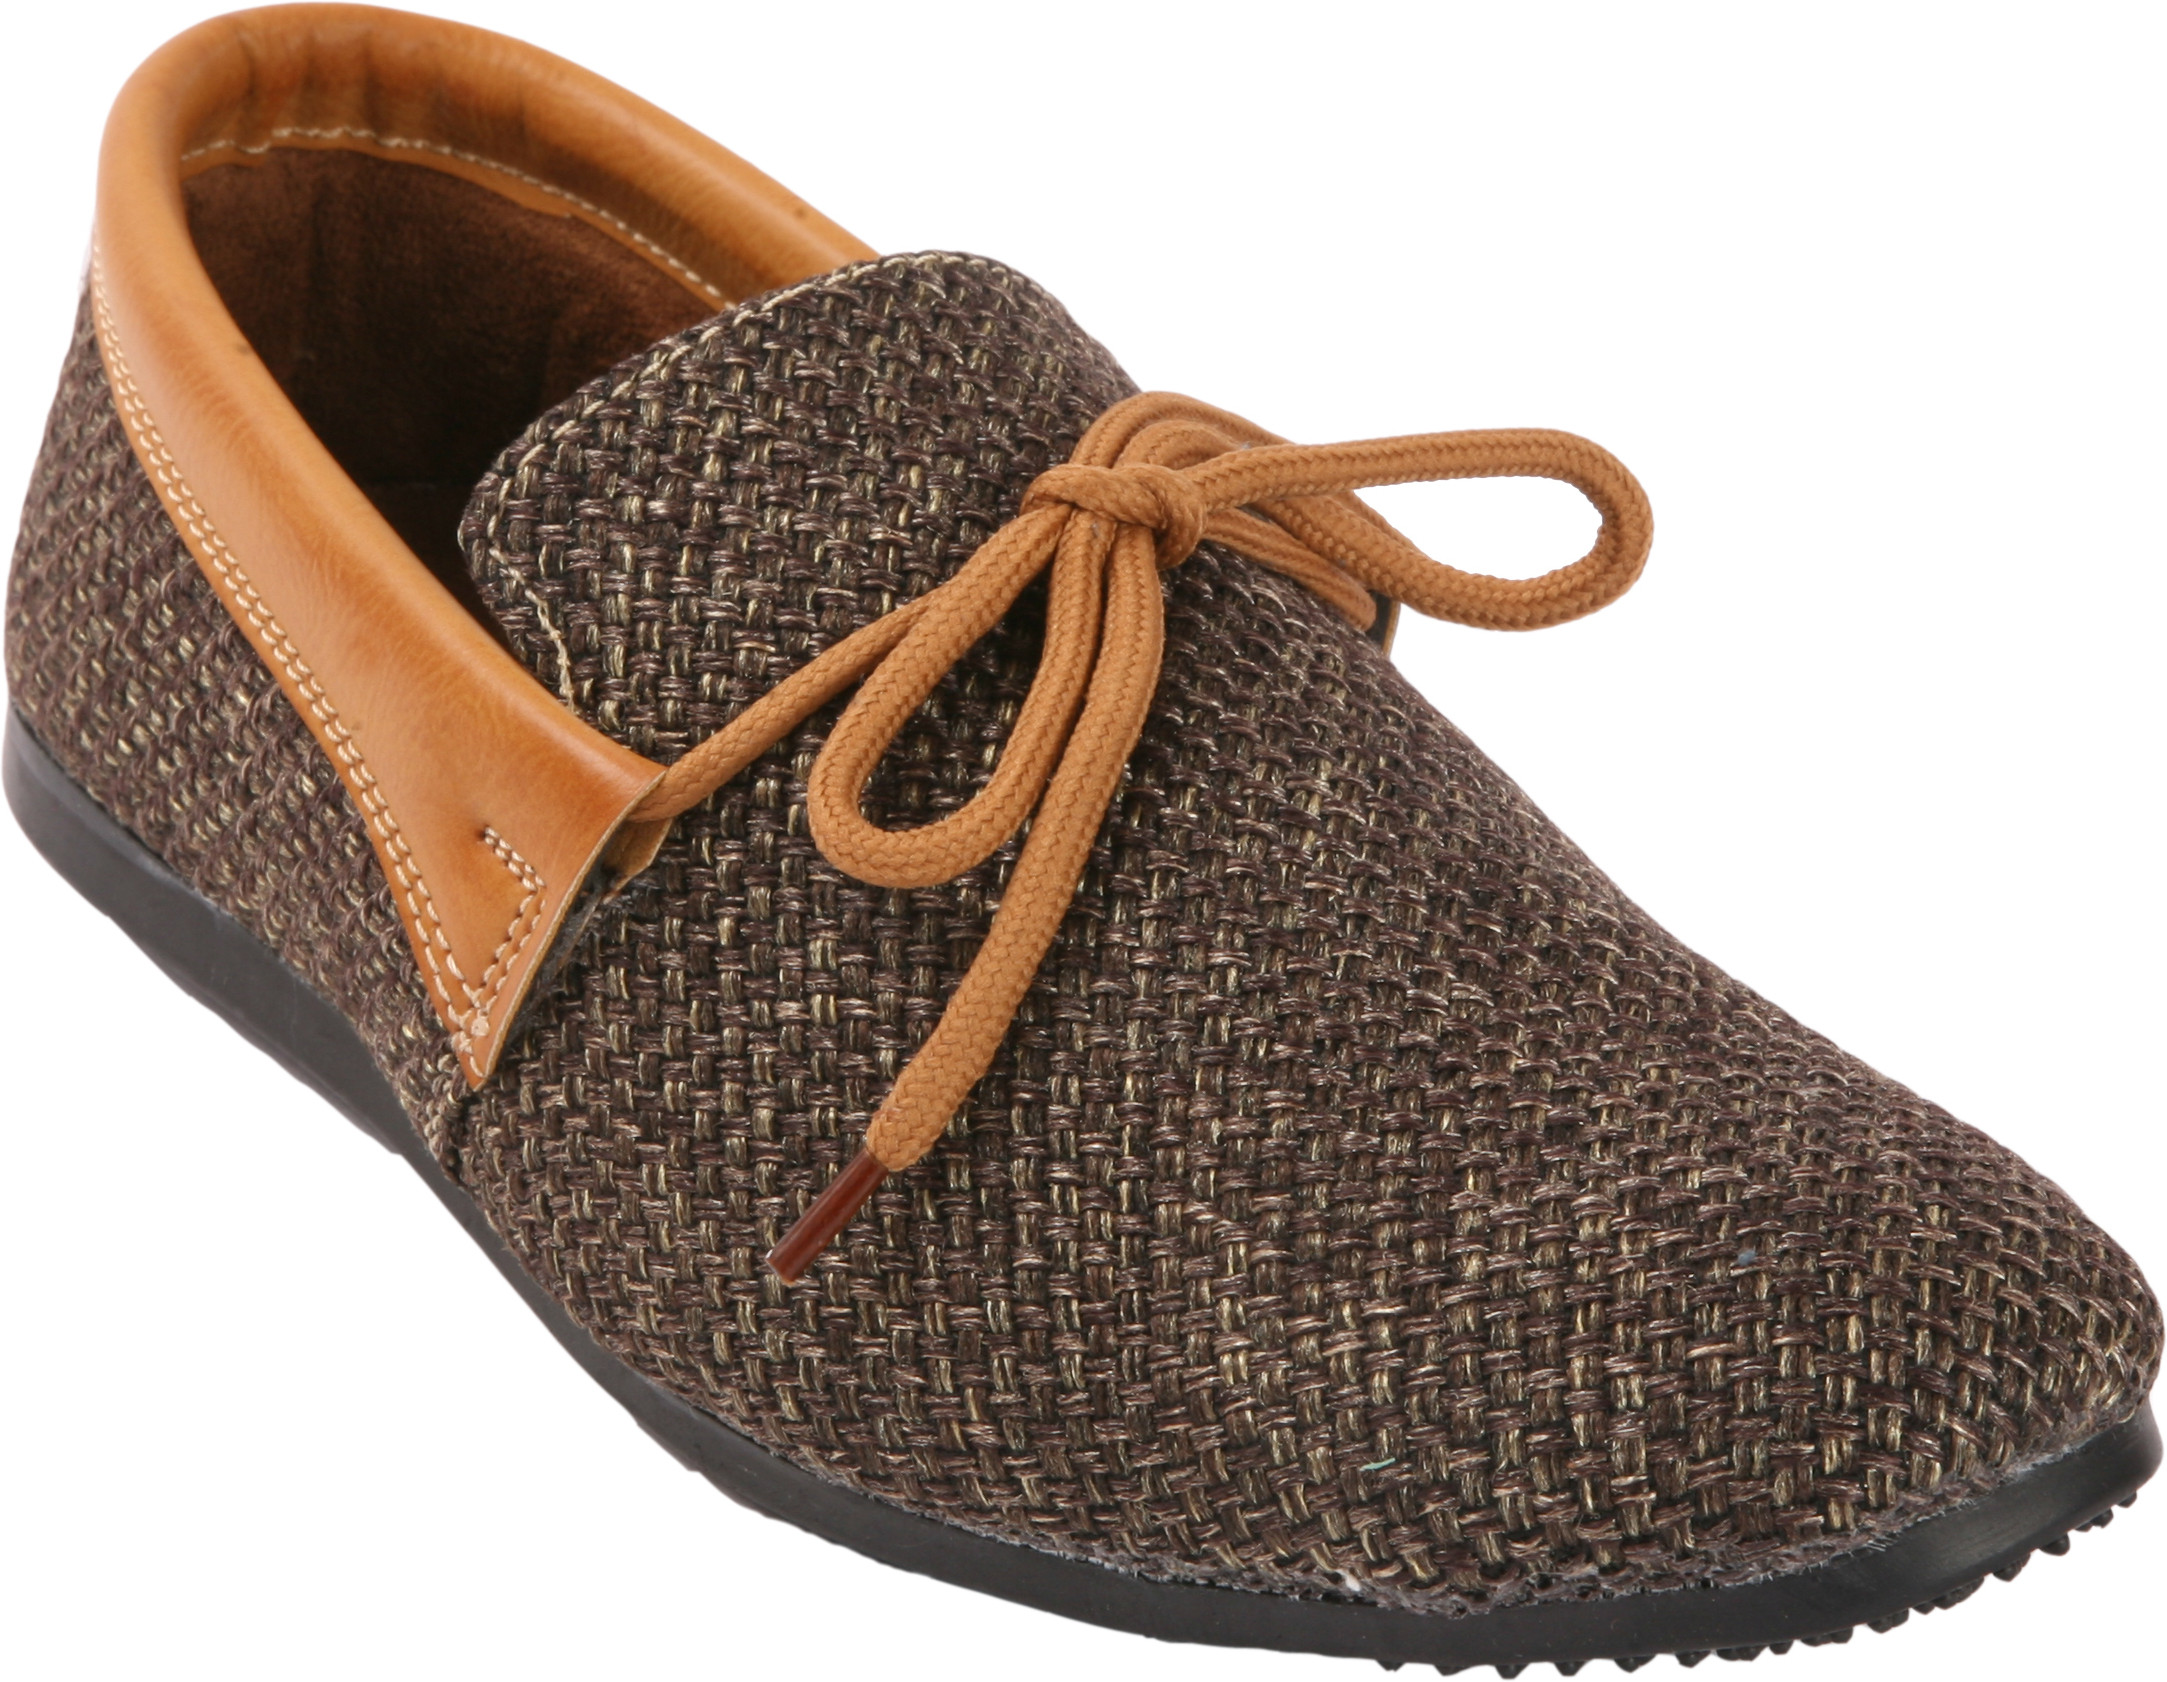 Getfashy Lifestyle Loafers